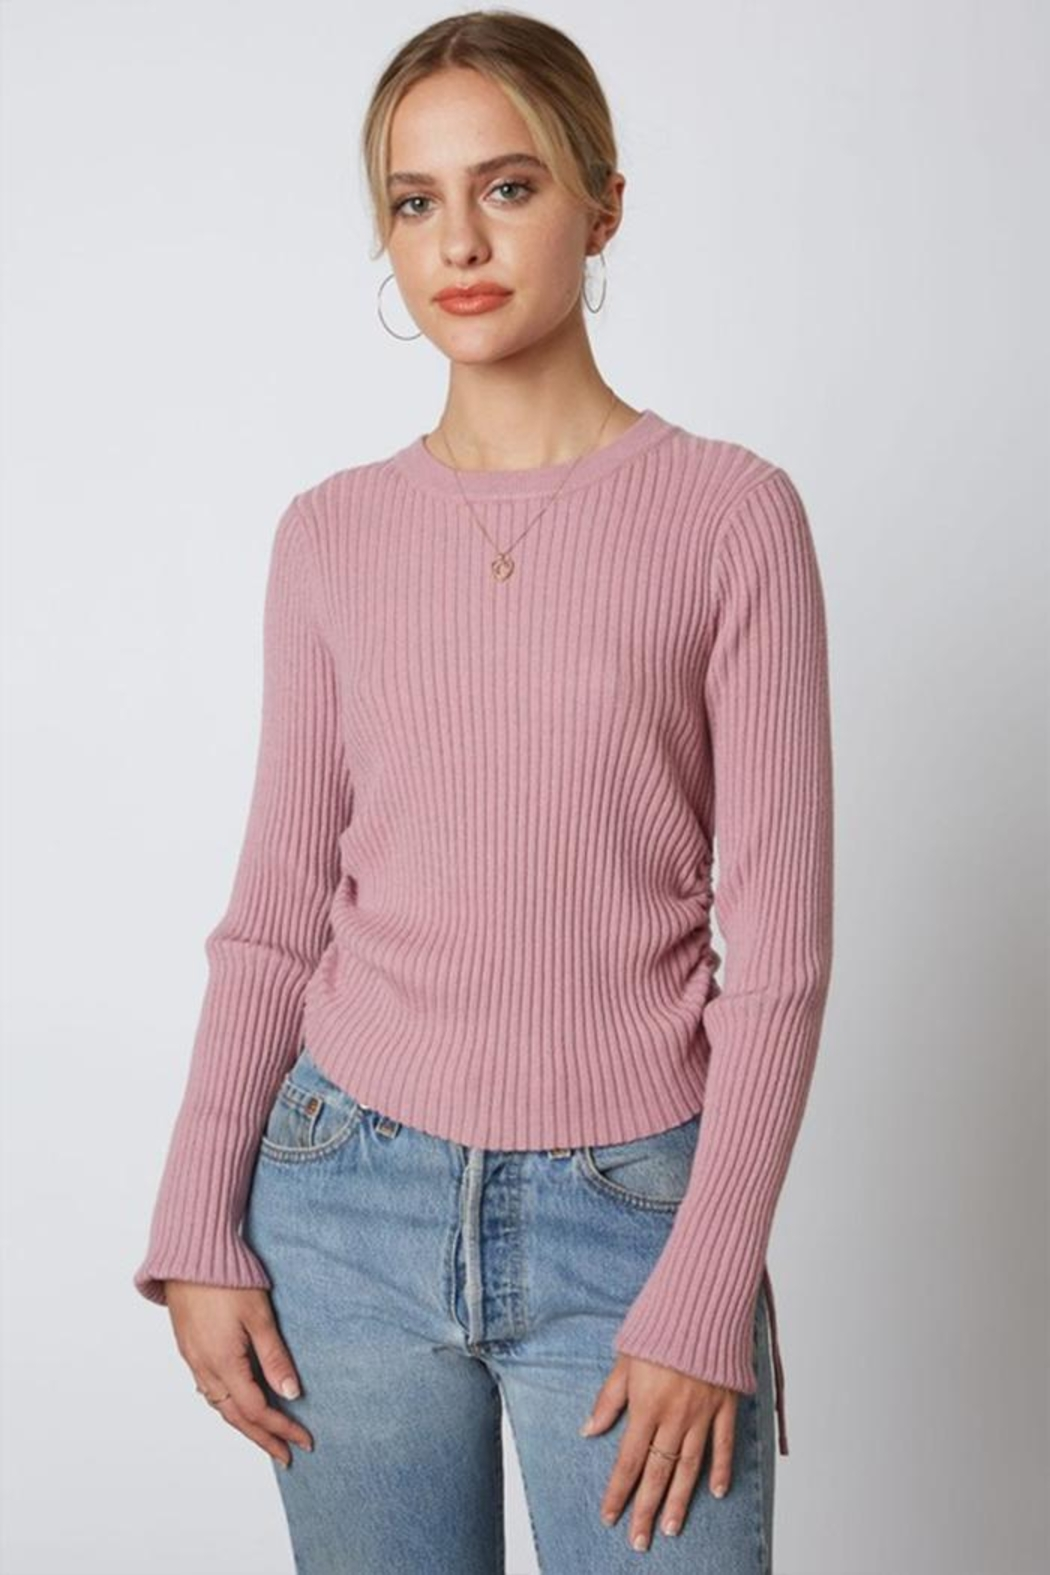 Cotton Candy LA Ribbed Cinched Sweater - Main Image